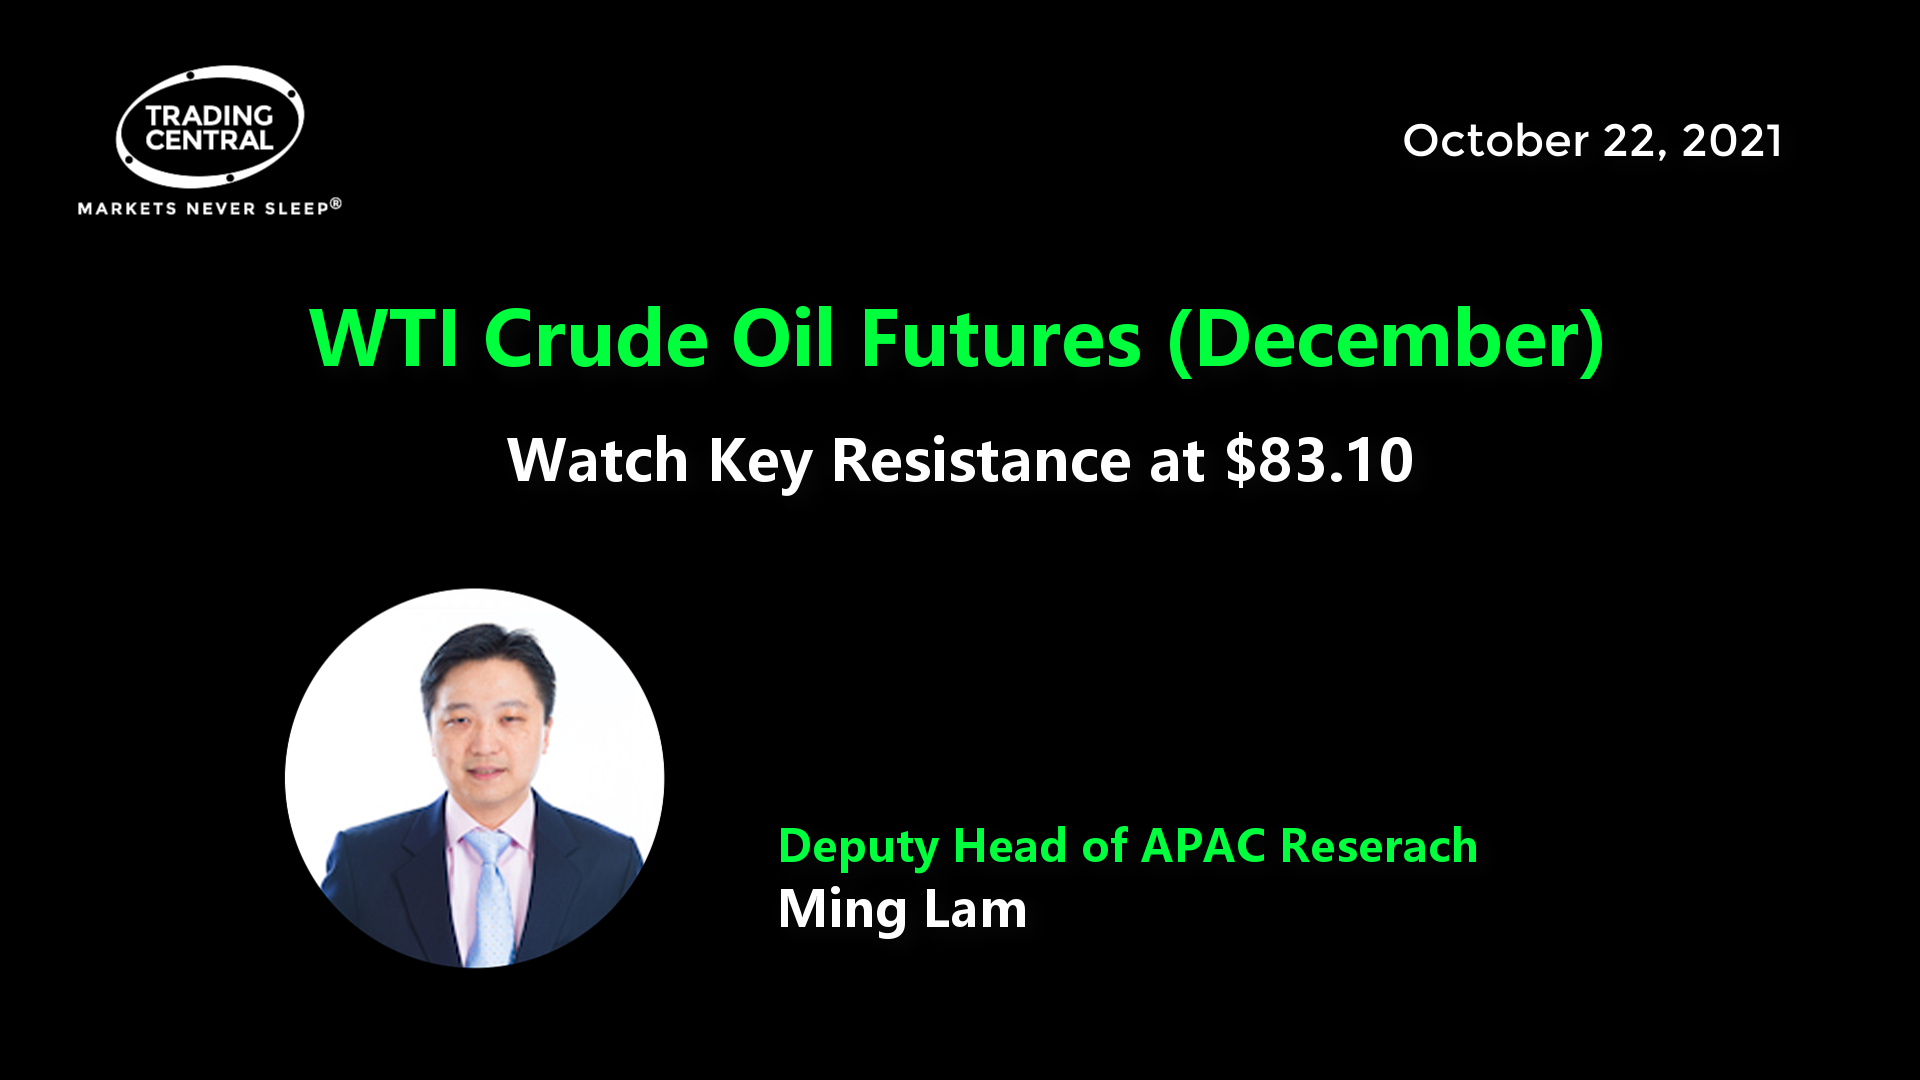 WTI Crude Oil Futures (December) - Watch Key Resistance at $83.10